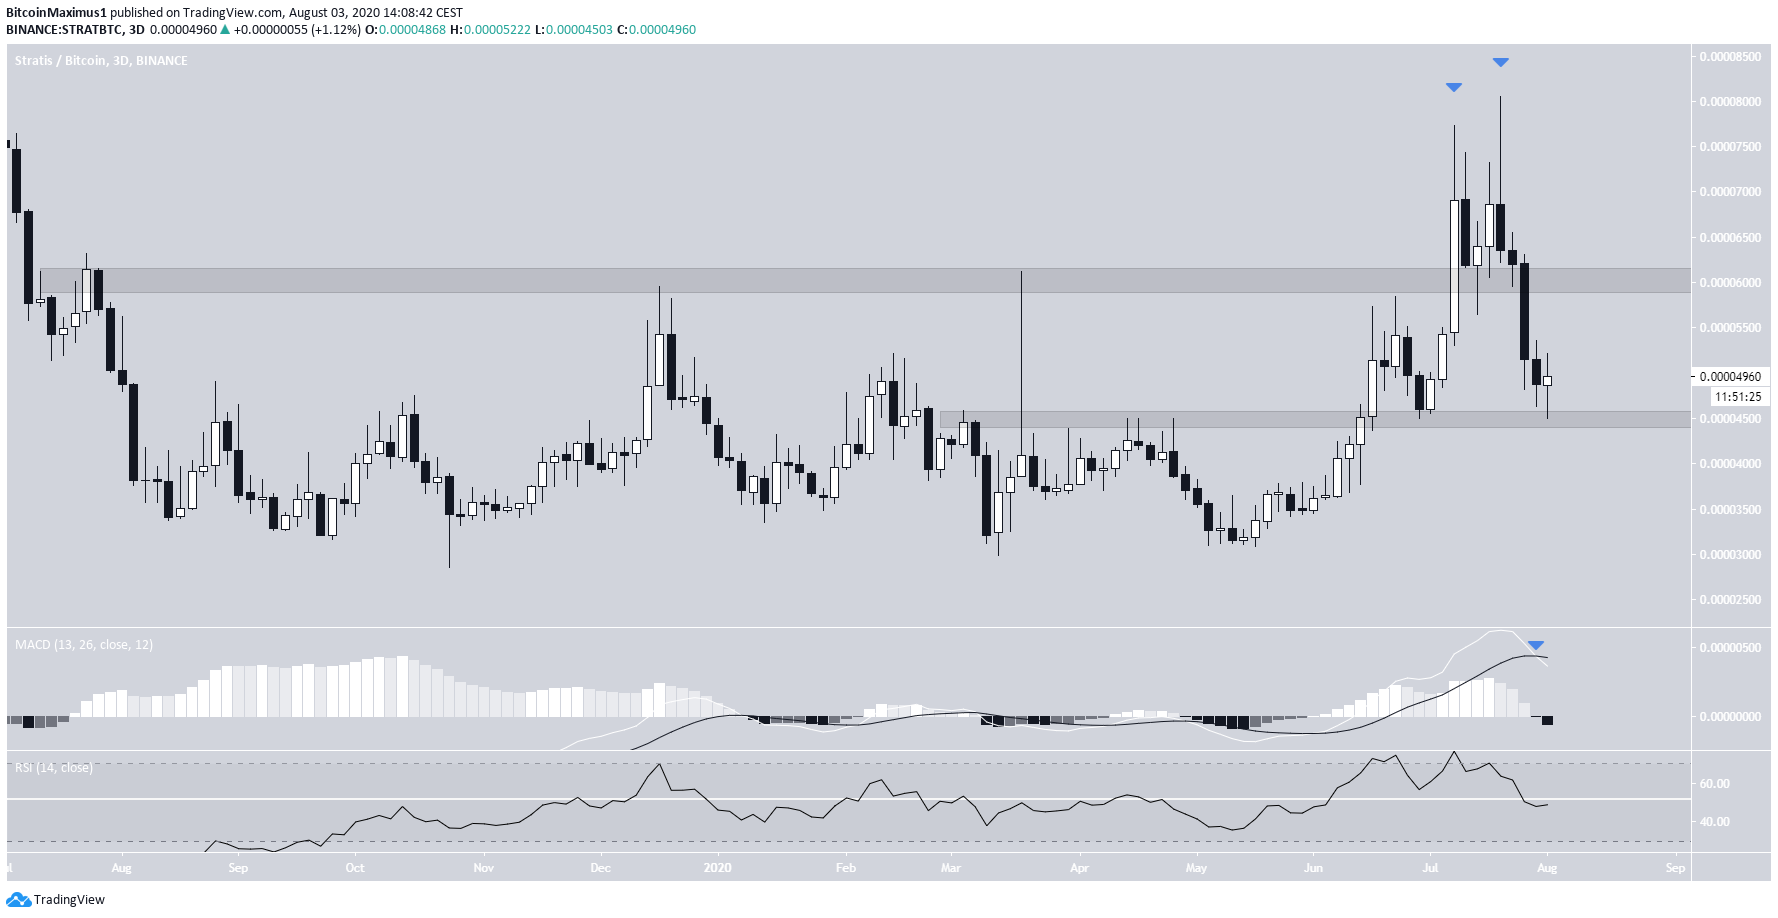 Stratis Weekly Movement